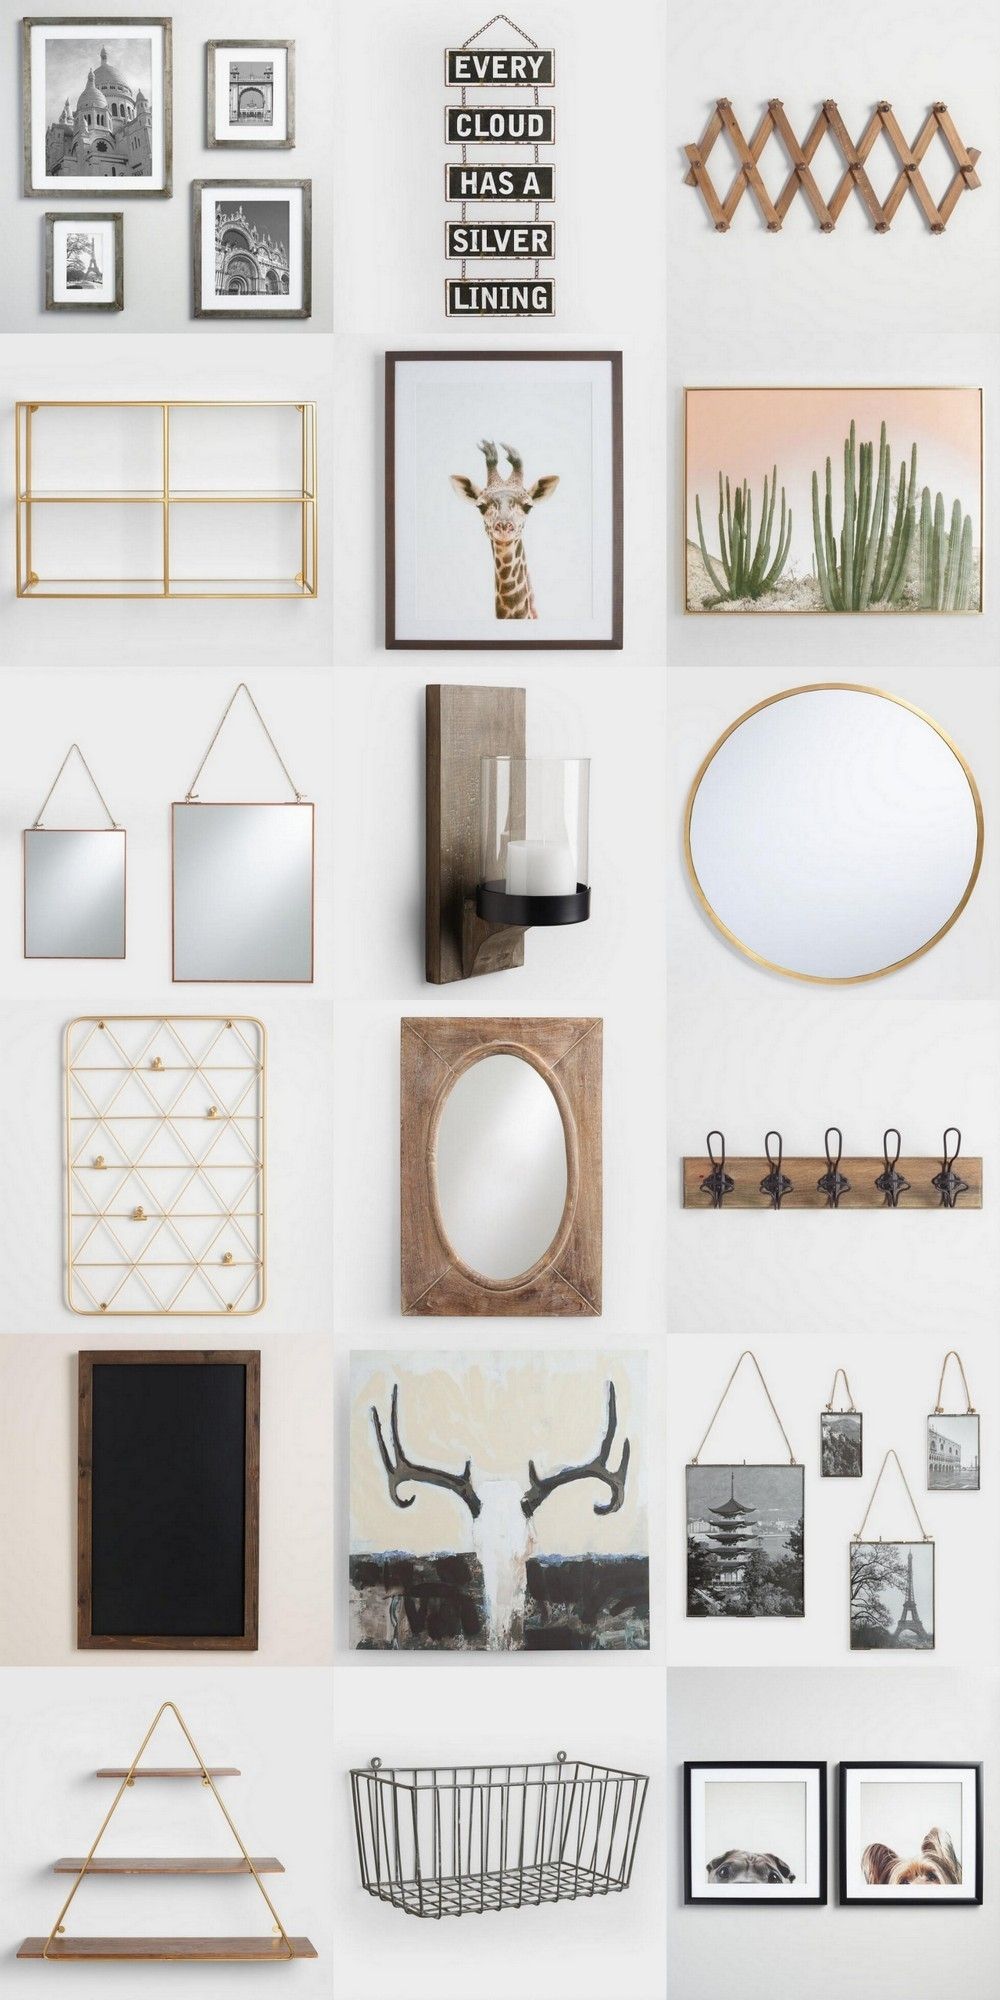 The 18 Best Items For Your Walls From World Market | The Tomkat For World Market Wall Art (View 20 of 20)